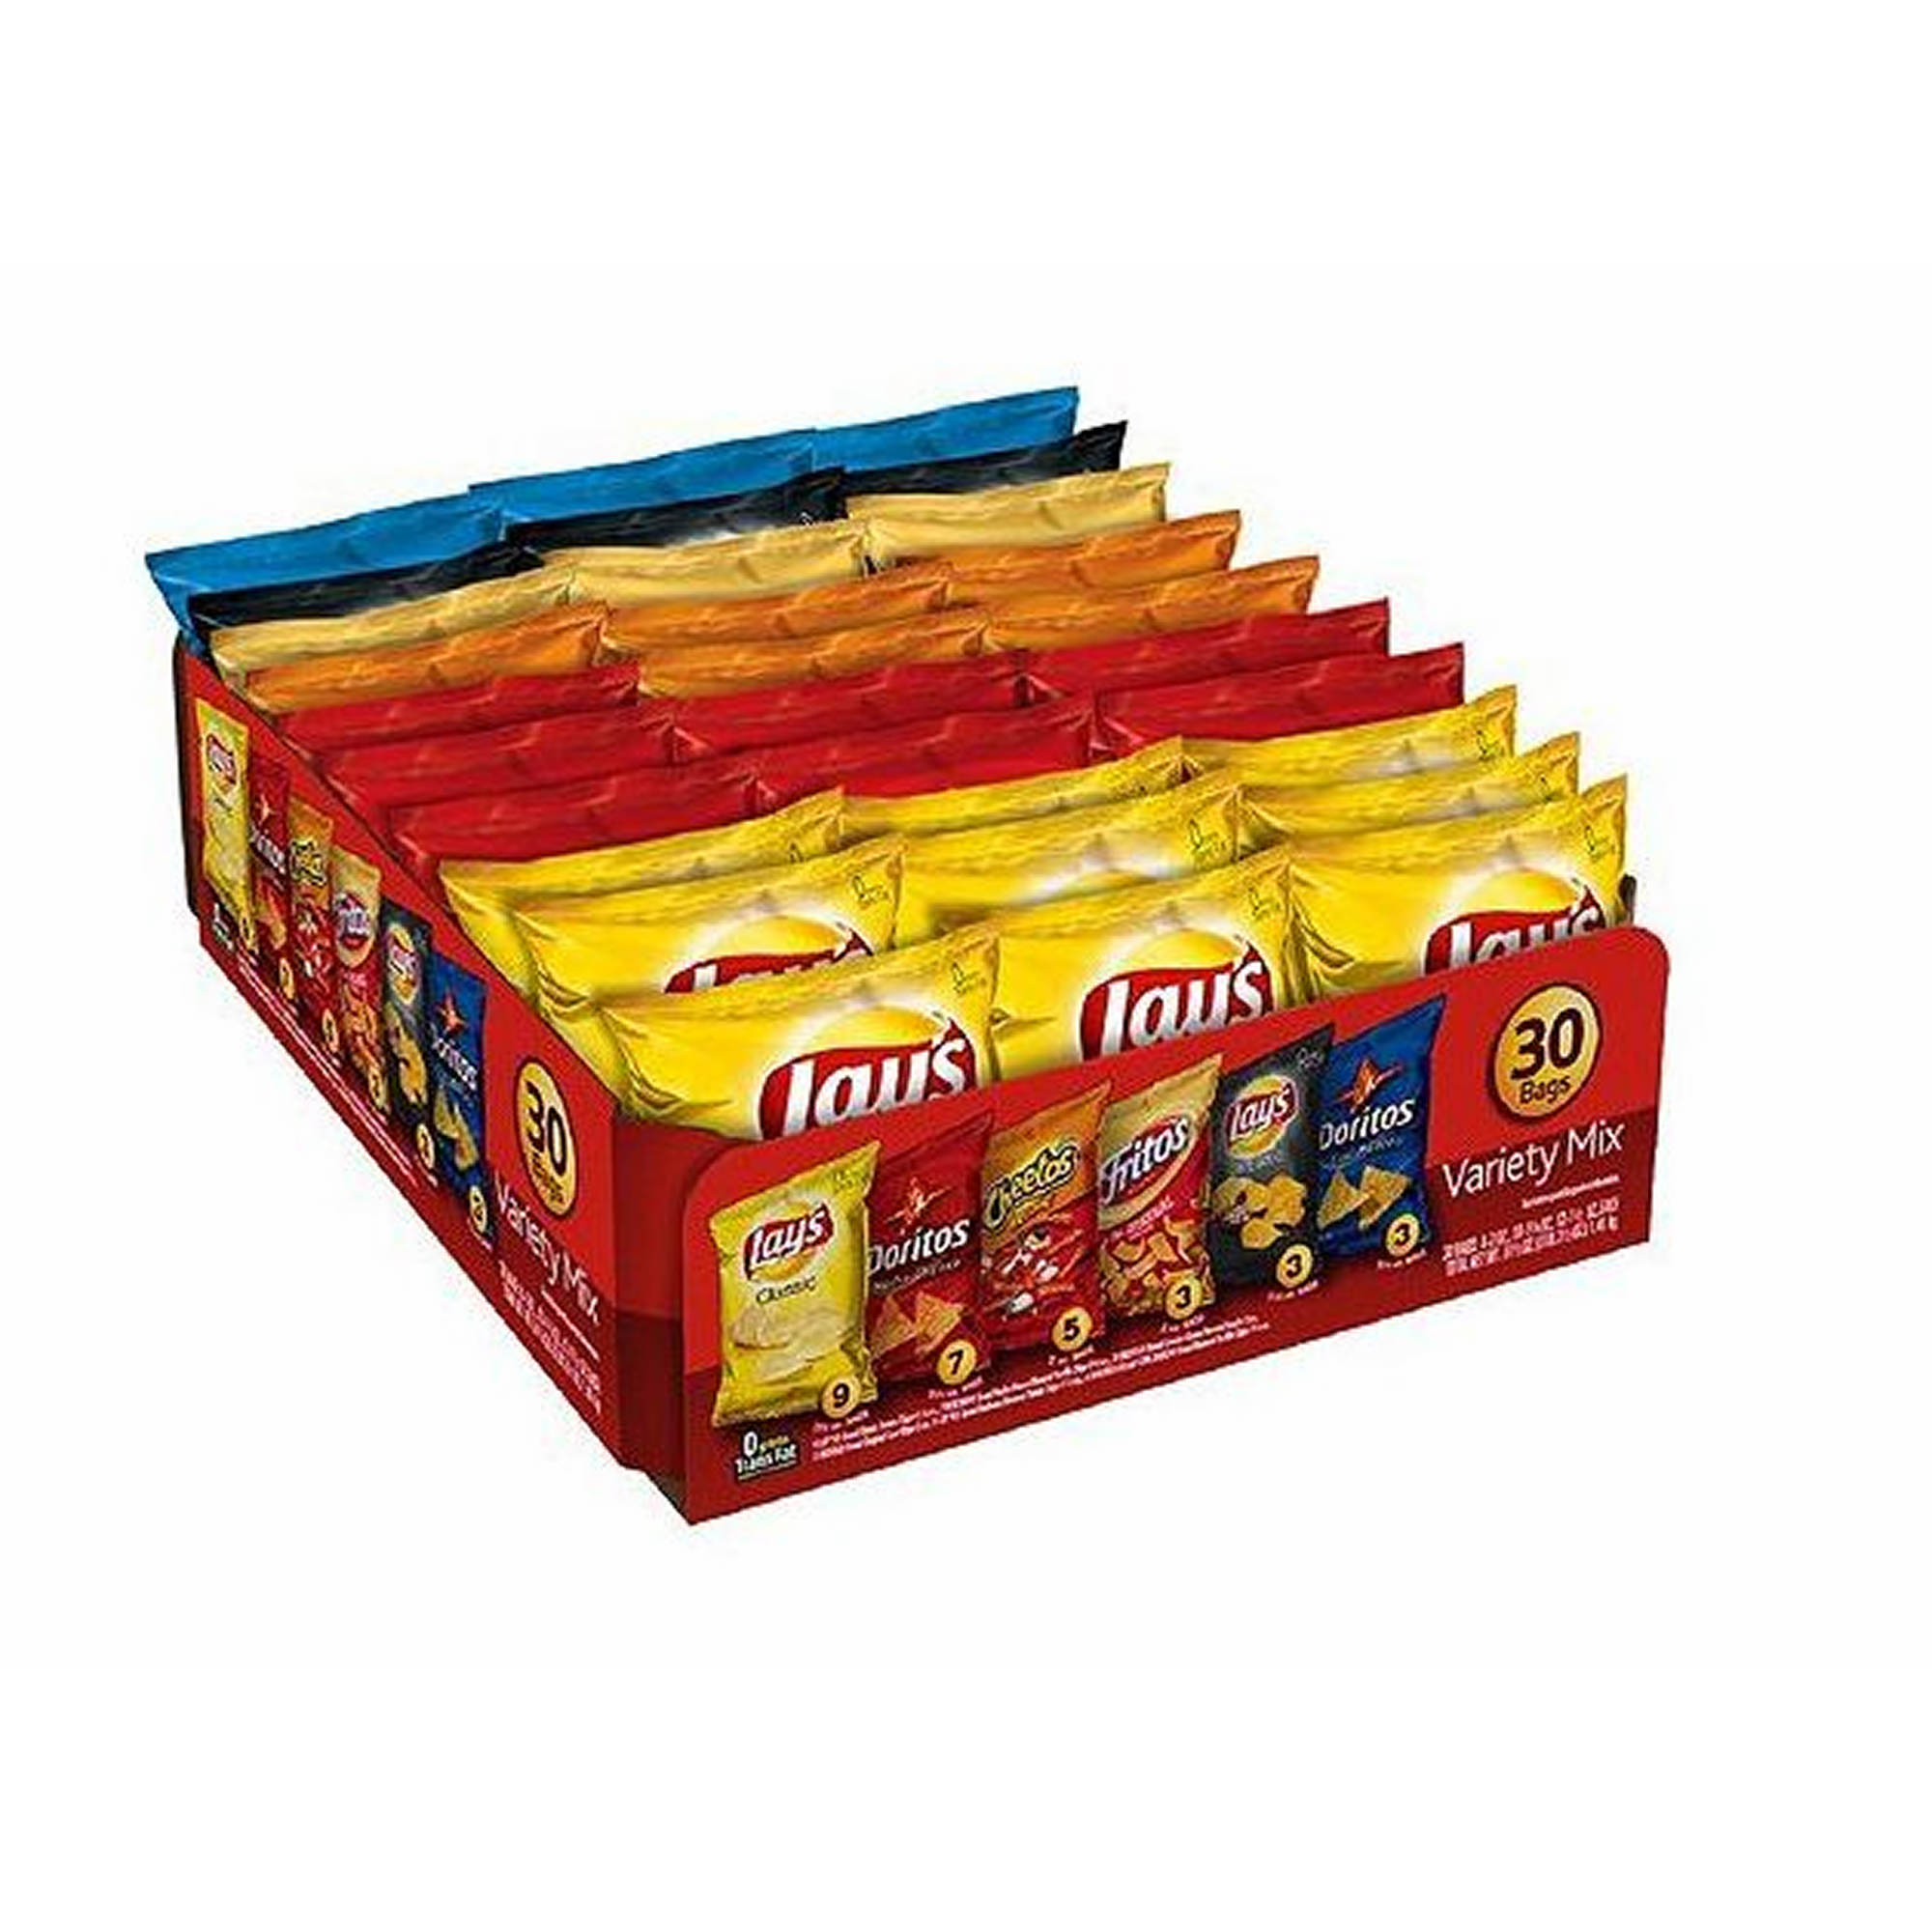 Frito lay variety pack : Bible verse questions